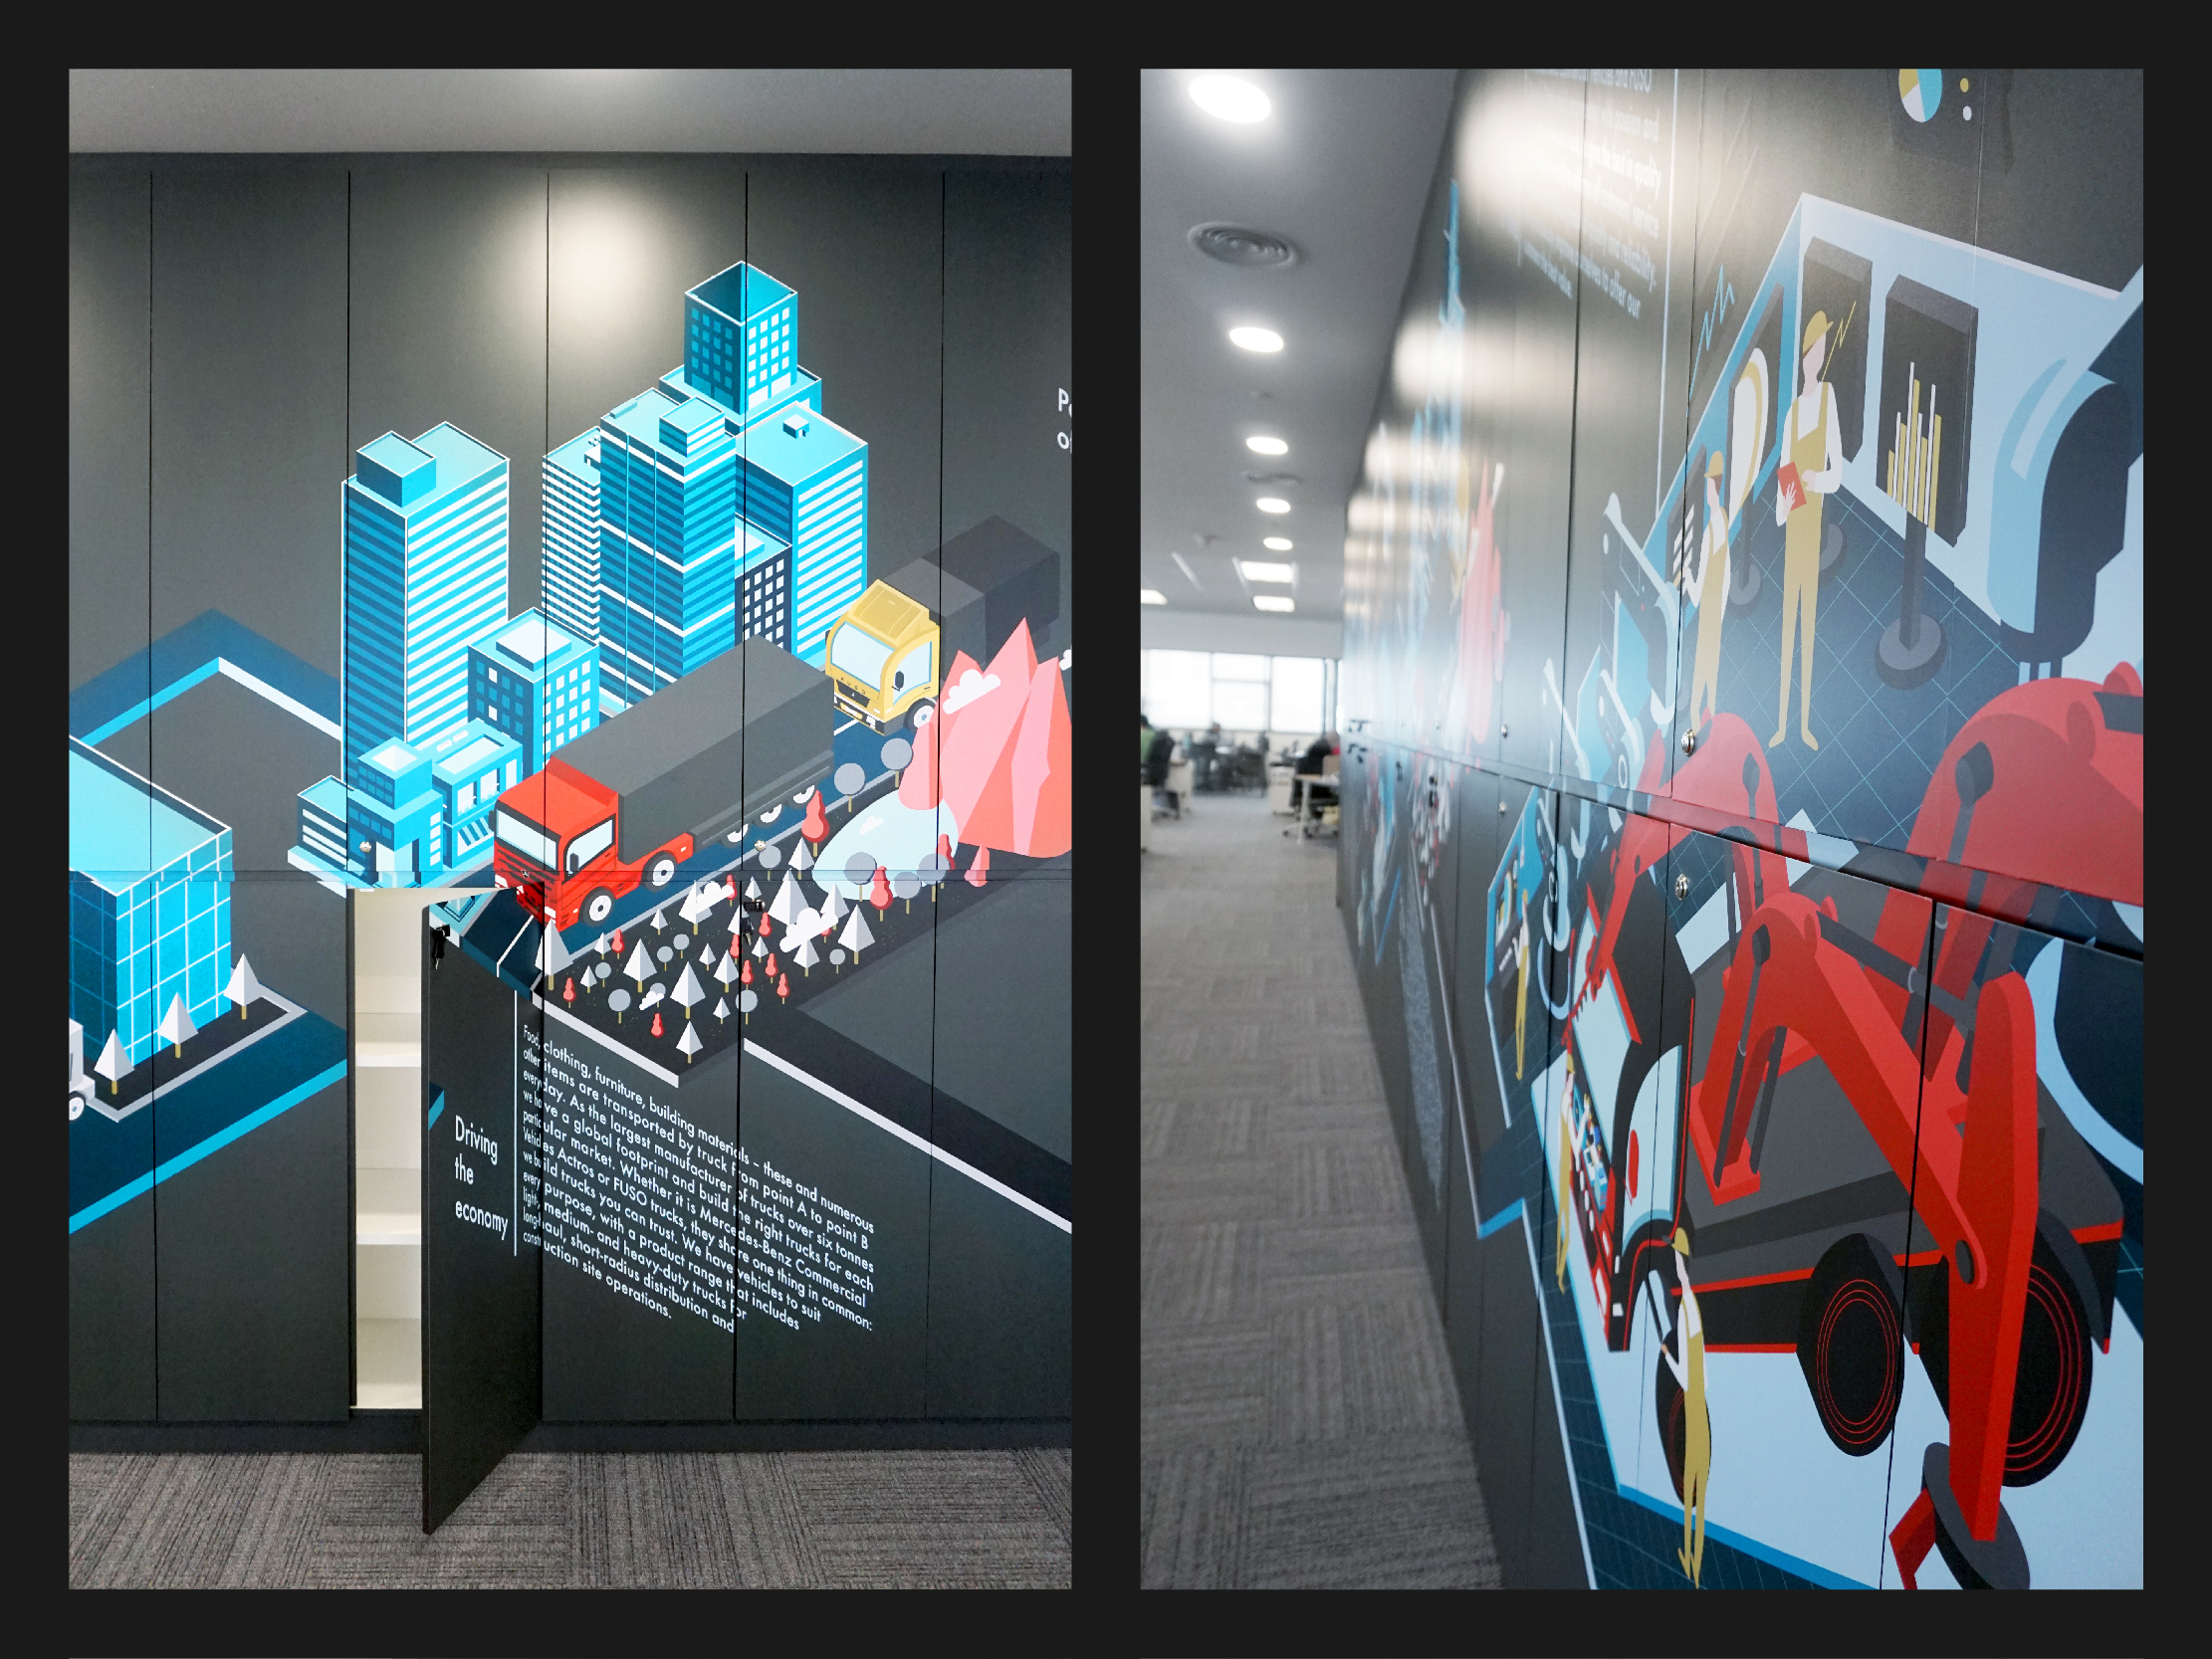 Mercedes-Benz wall art illustration design highlighting each part of their operations from assembly to sales and delivery printed on a wall of locker storage cupboard front and side view.